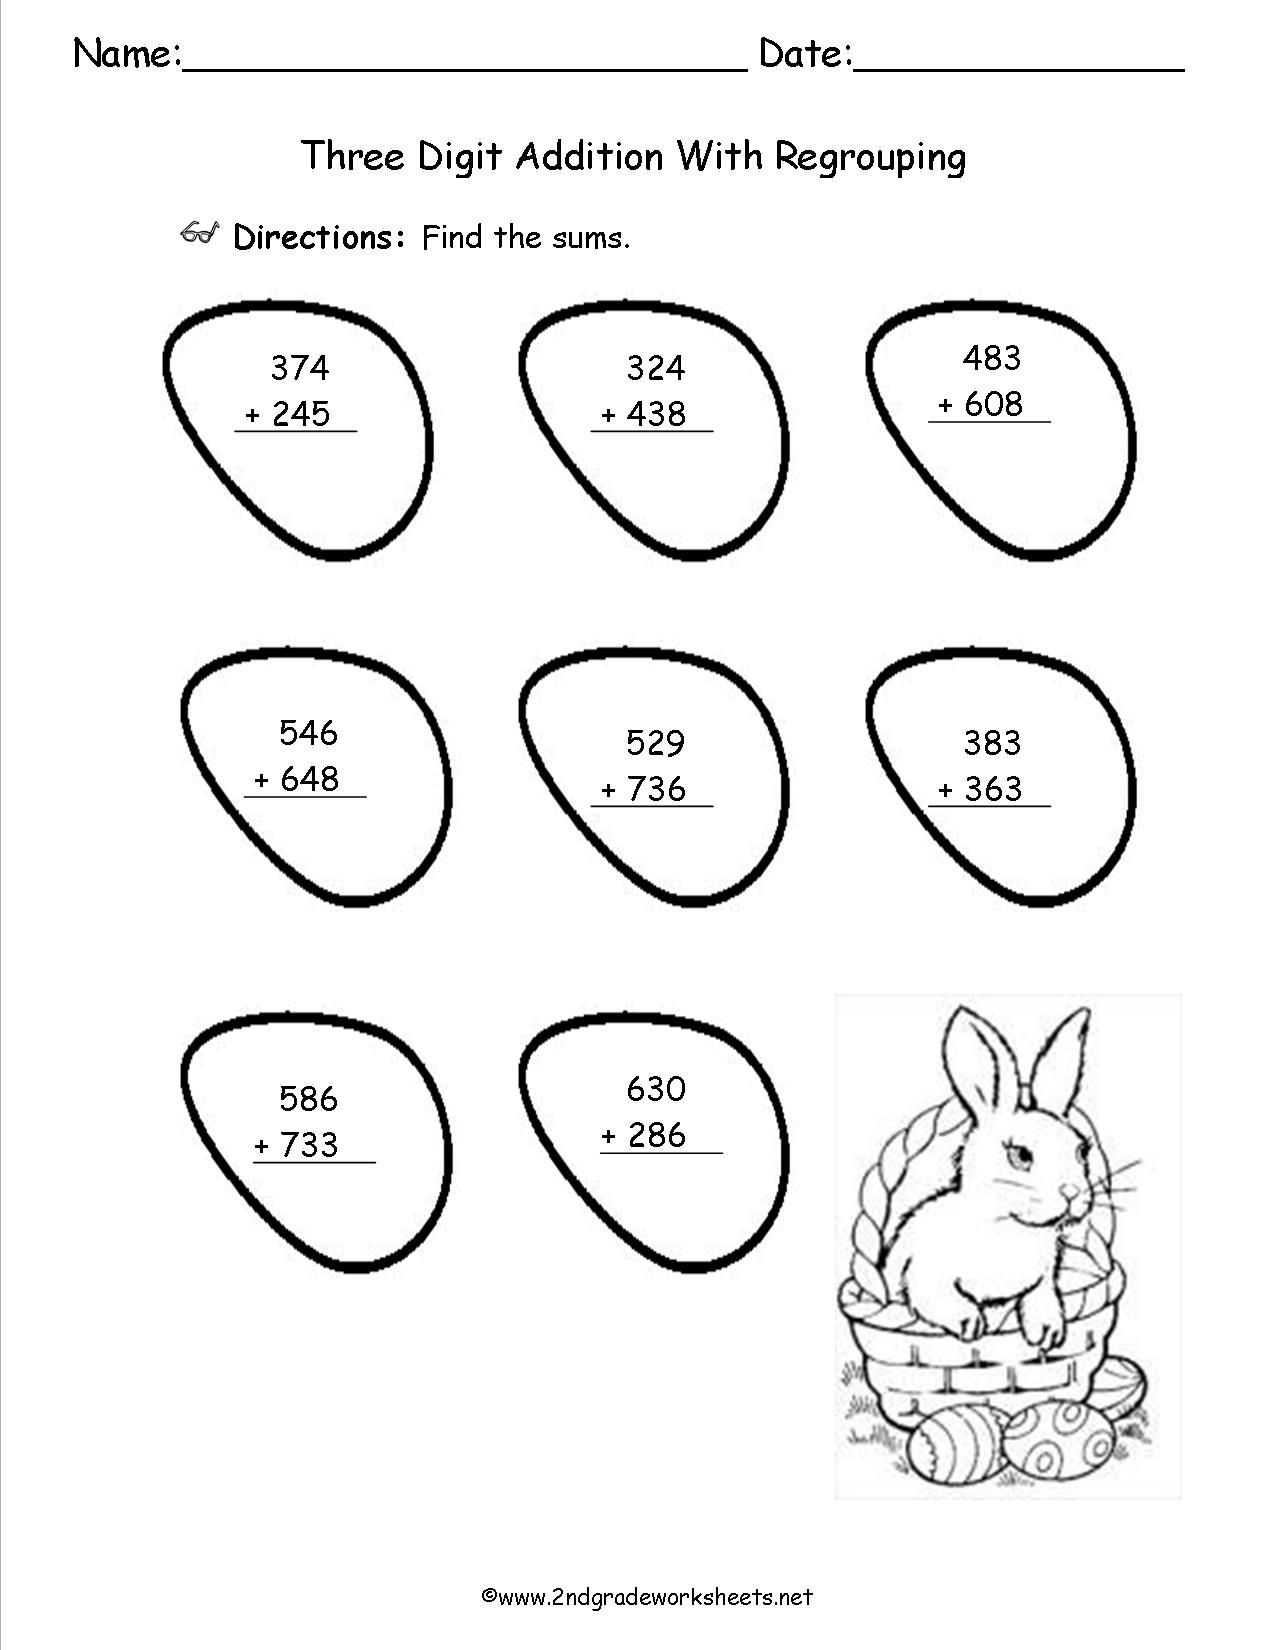 16 Best Images Of Two Digit Worksheets Without Regrouping